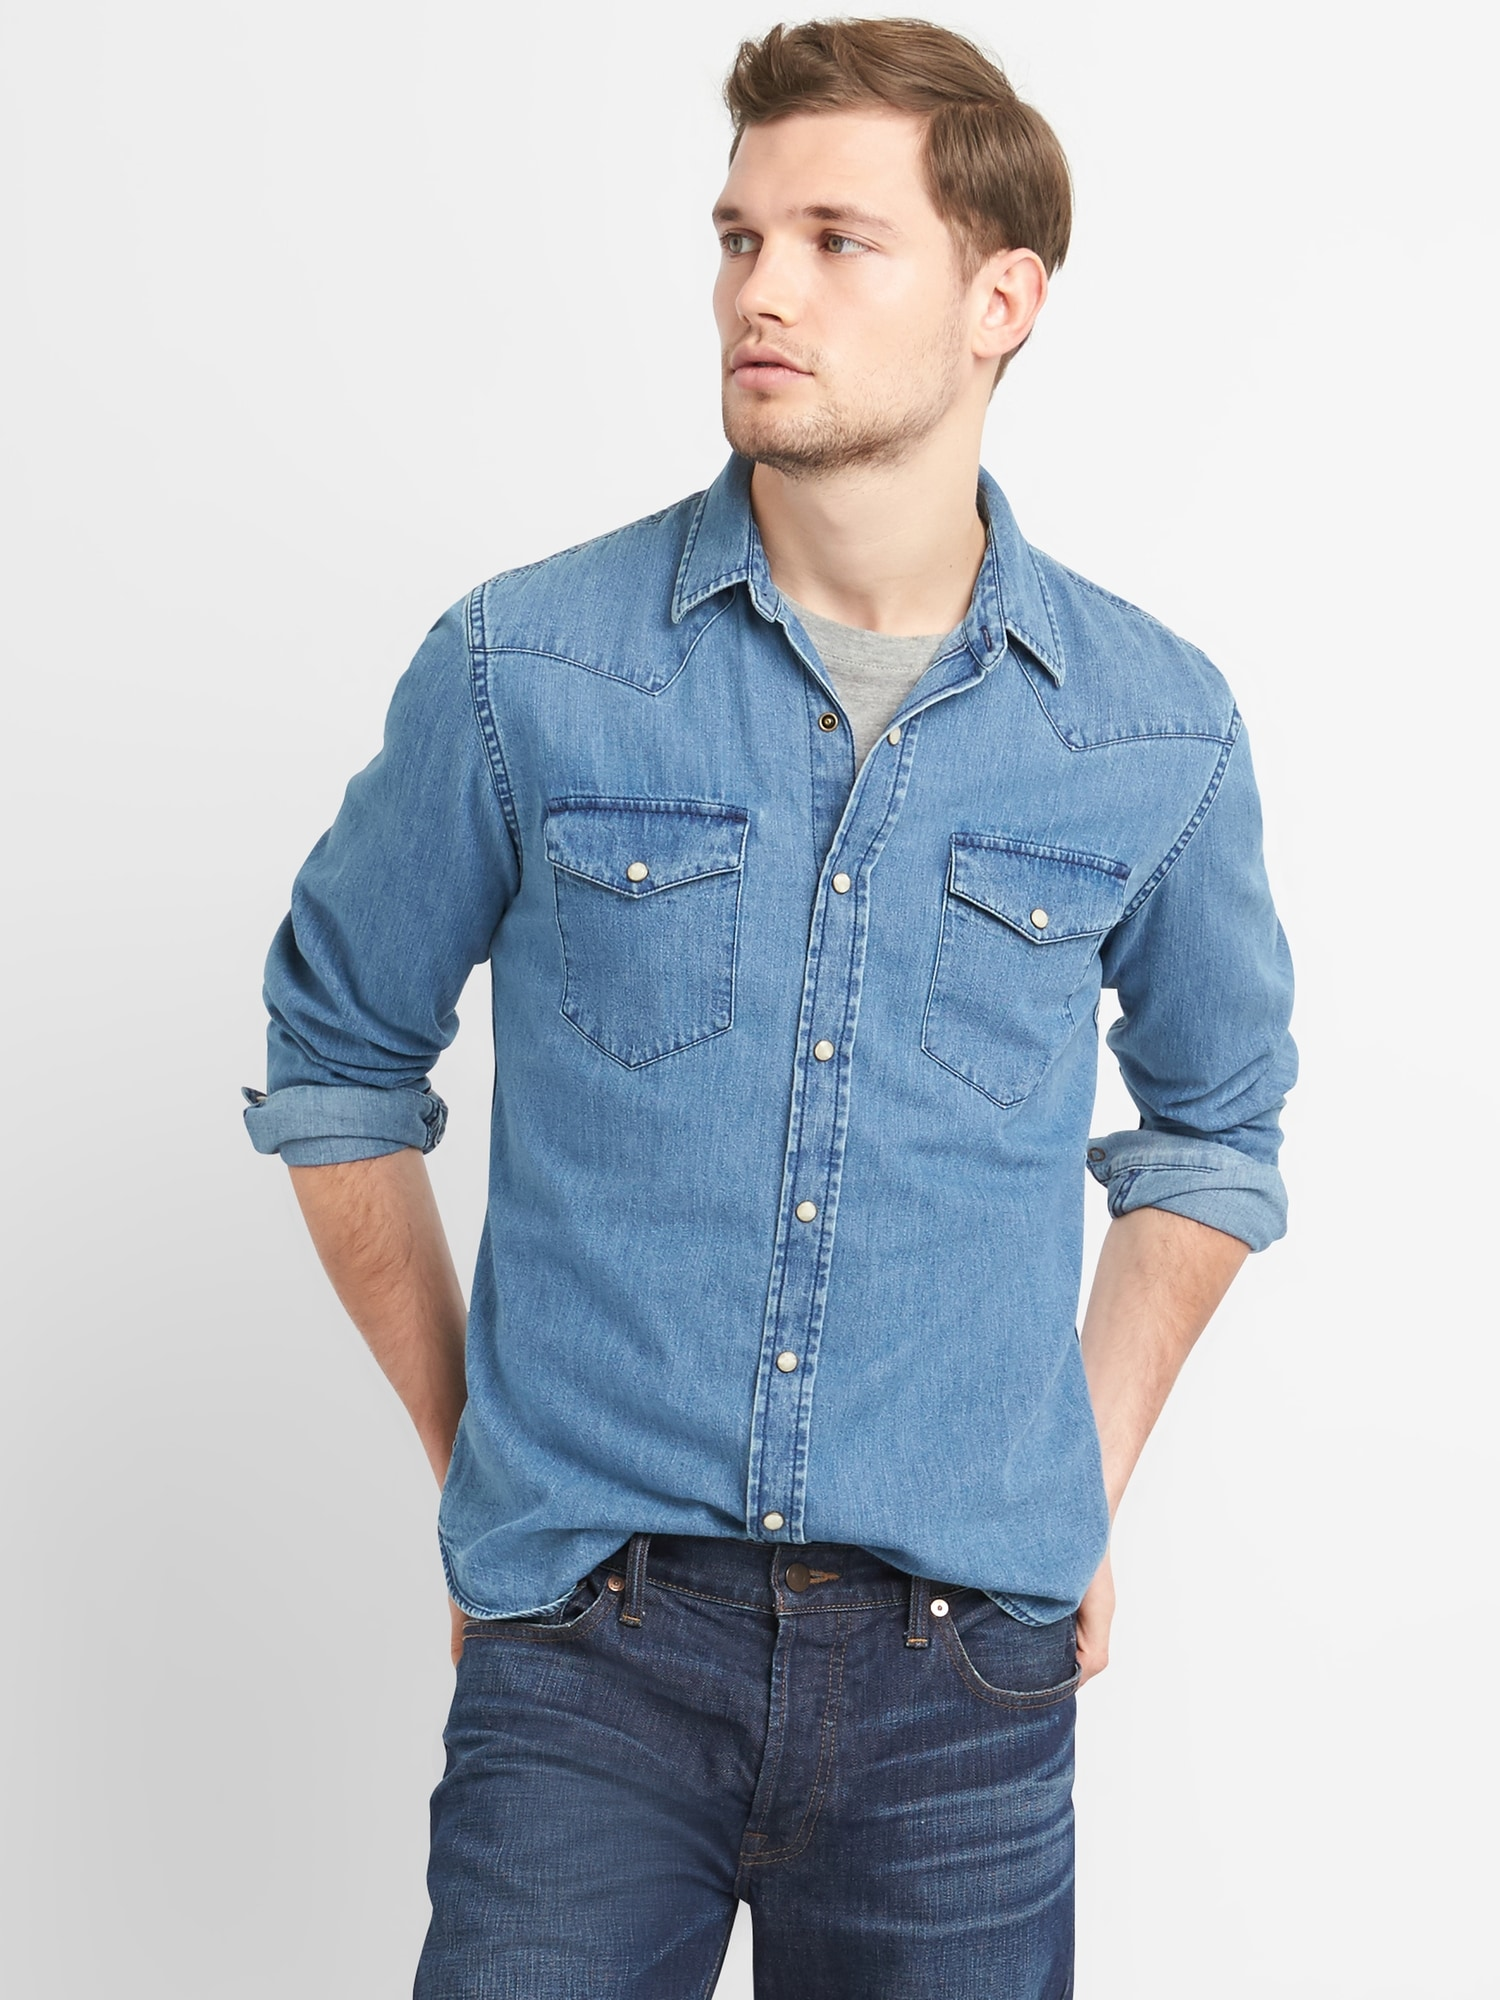 Mens Casual Fit Button Down Shirts Long Sleeve Denim Shirts Western Shirt